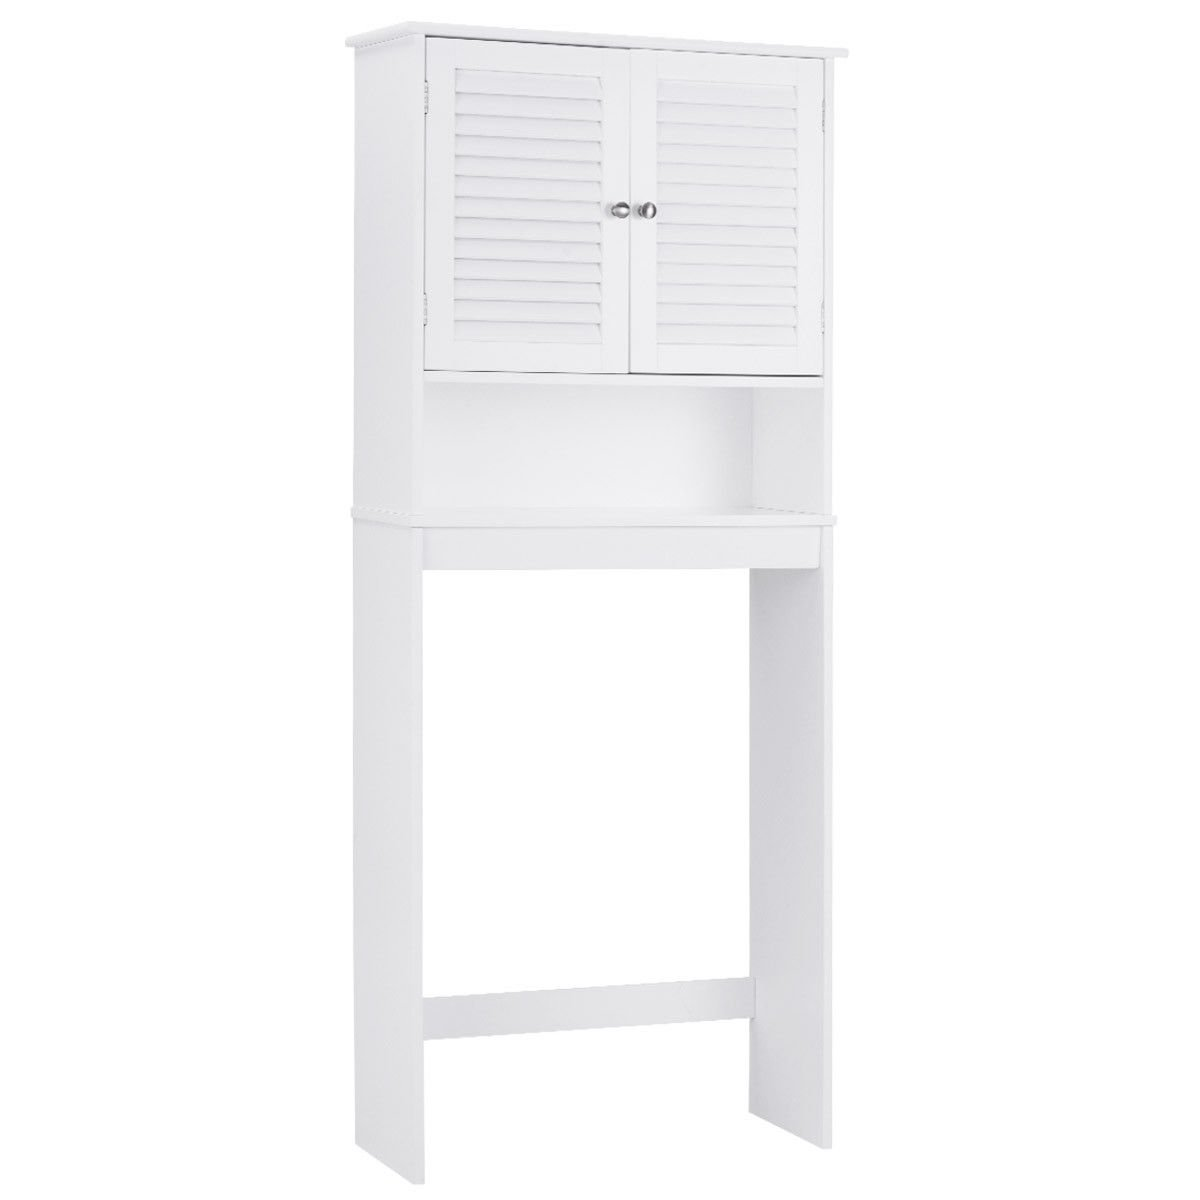 Giantex Over-The-Toilet Bathroom Storage Space Saver with 2 Door Cabinet Storage Shelf, White by Giantex